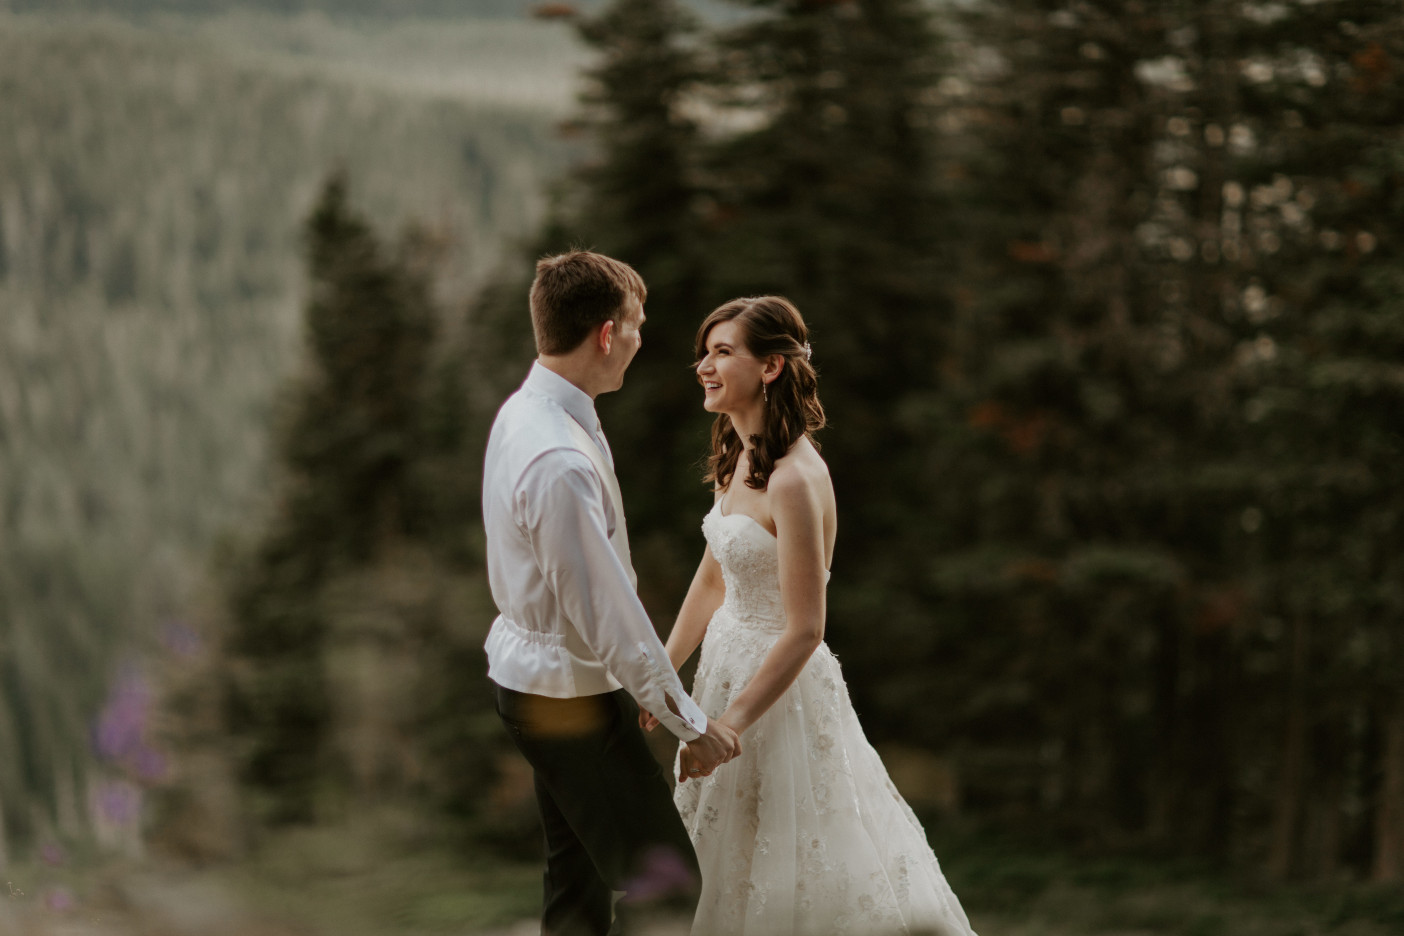 Moira and Ryan smile at eachother near the view at Mount Hood. Adventure elopement wedding shoot by Sienna Plus Josh.